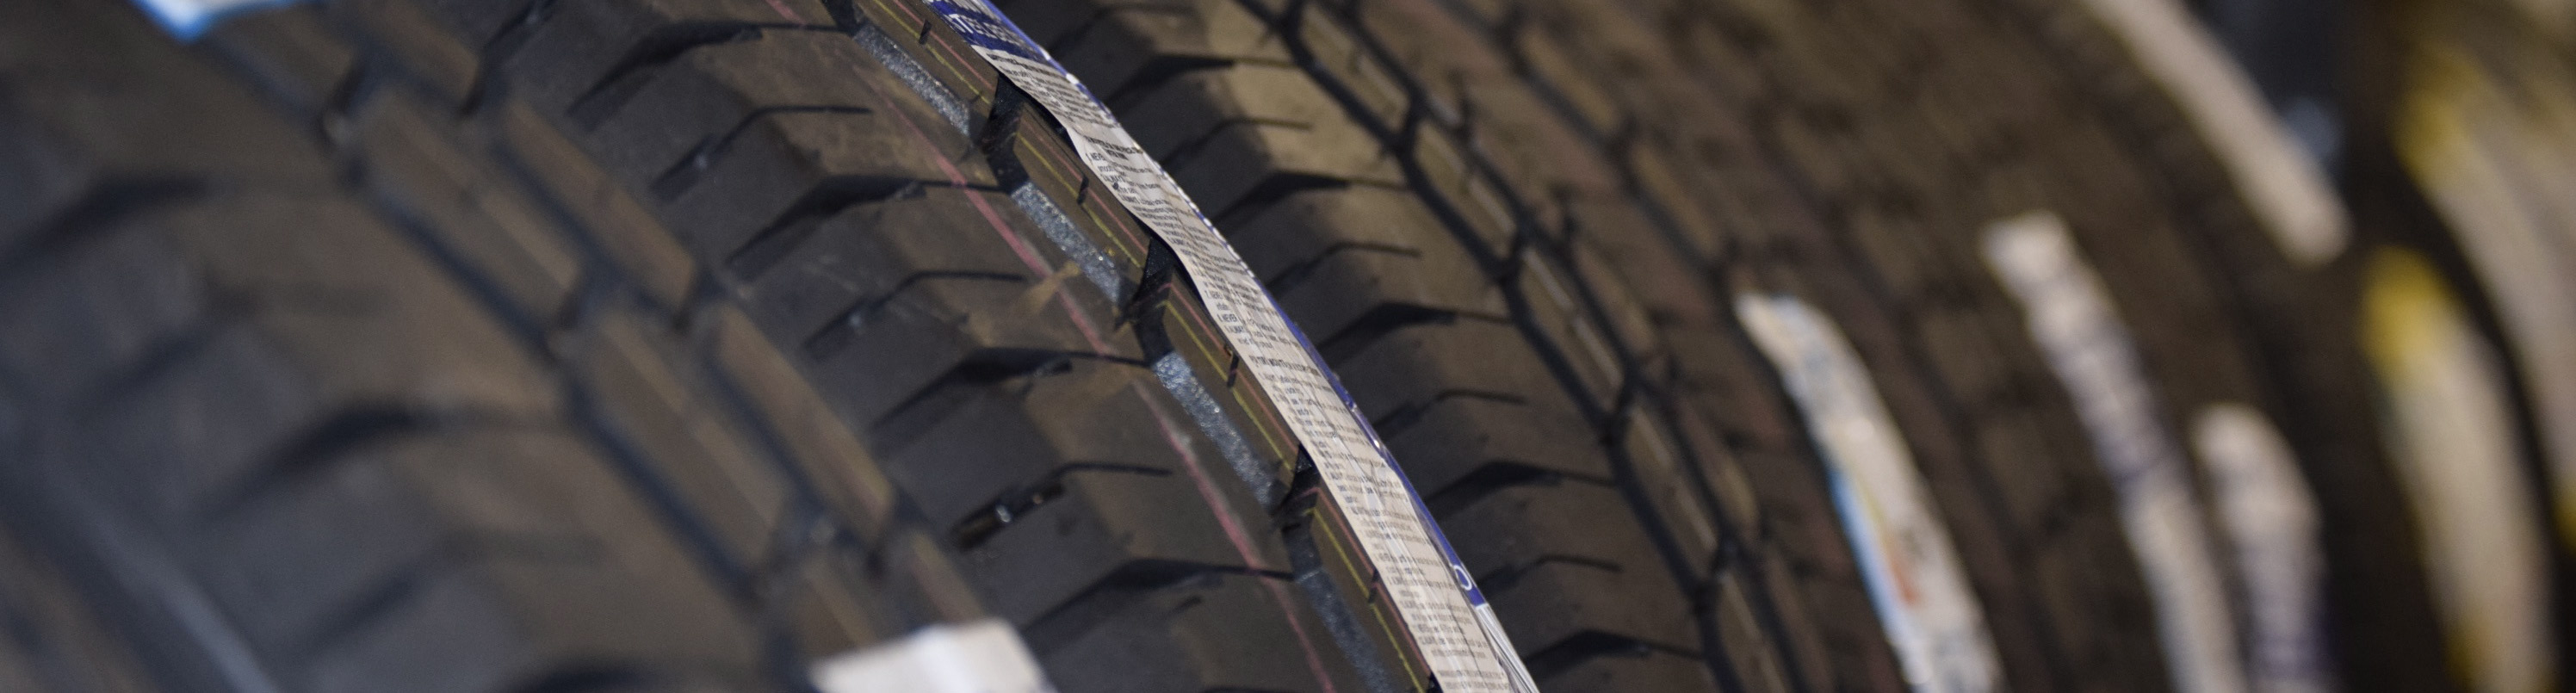 A VAST SELECTION OF TYRES FROM ALL MANUFACTURERS